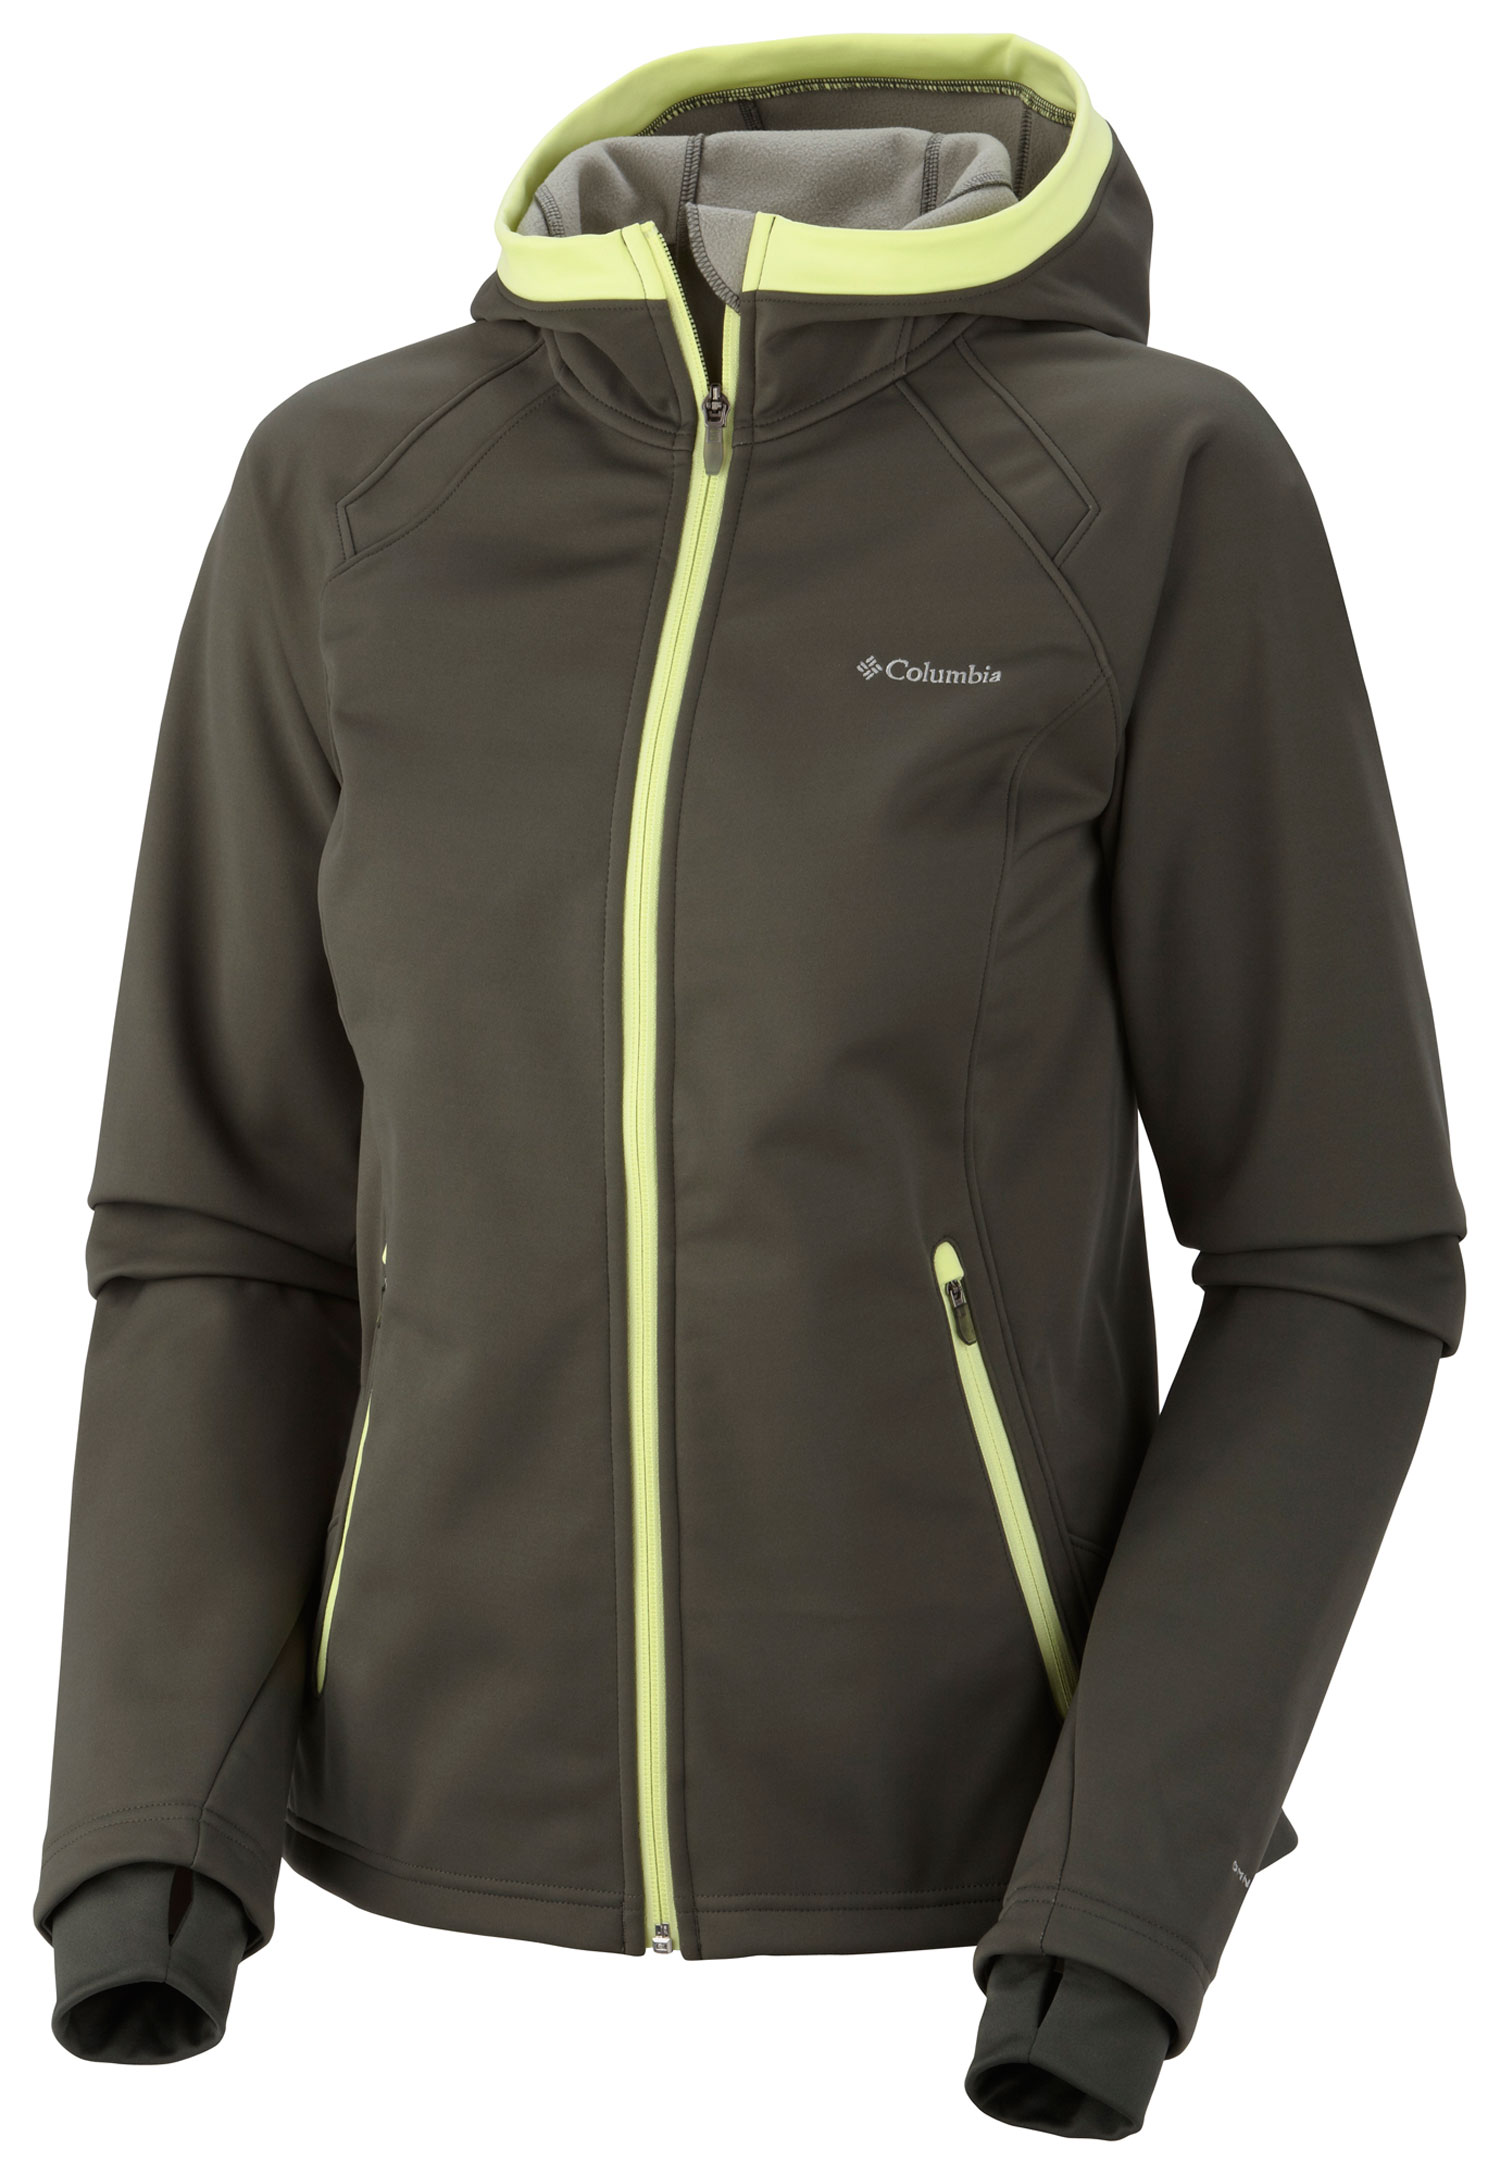 Key Features of the Columbia Supah Buttah Softshell Jacket: FABRIC 100% polyester 3L Butter Plush softshell. FIT Active Omni-Wind Block breathable windproof Omni-Shield advanced repellency Bonded softshell 2-way comfort stretch Drawcord adjustable hem Interior security pocket Comfort cuffs Thumb holes - $84.95